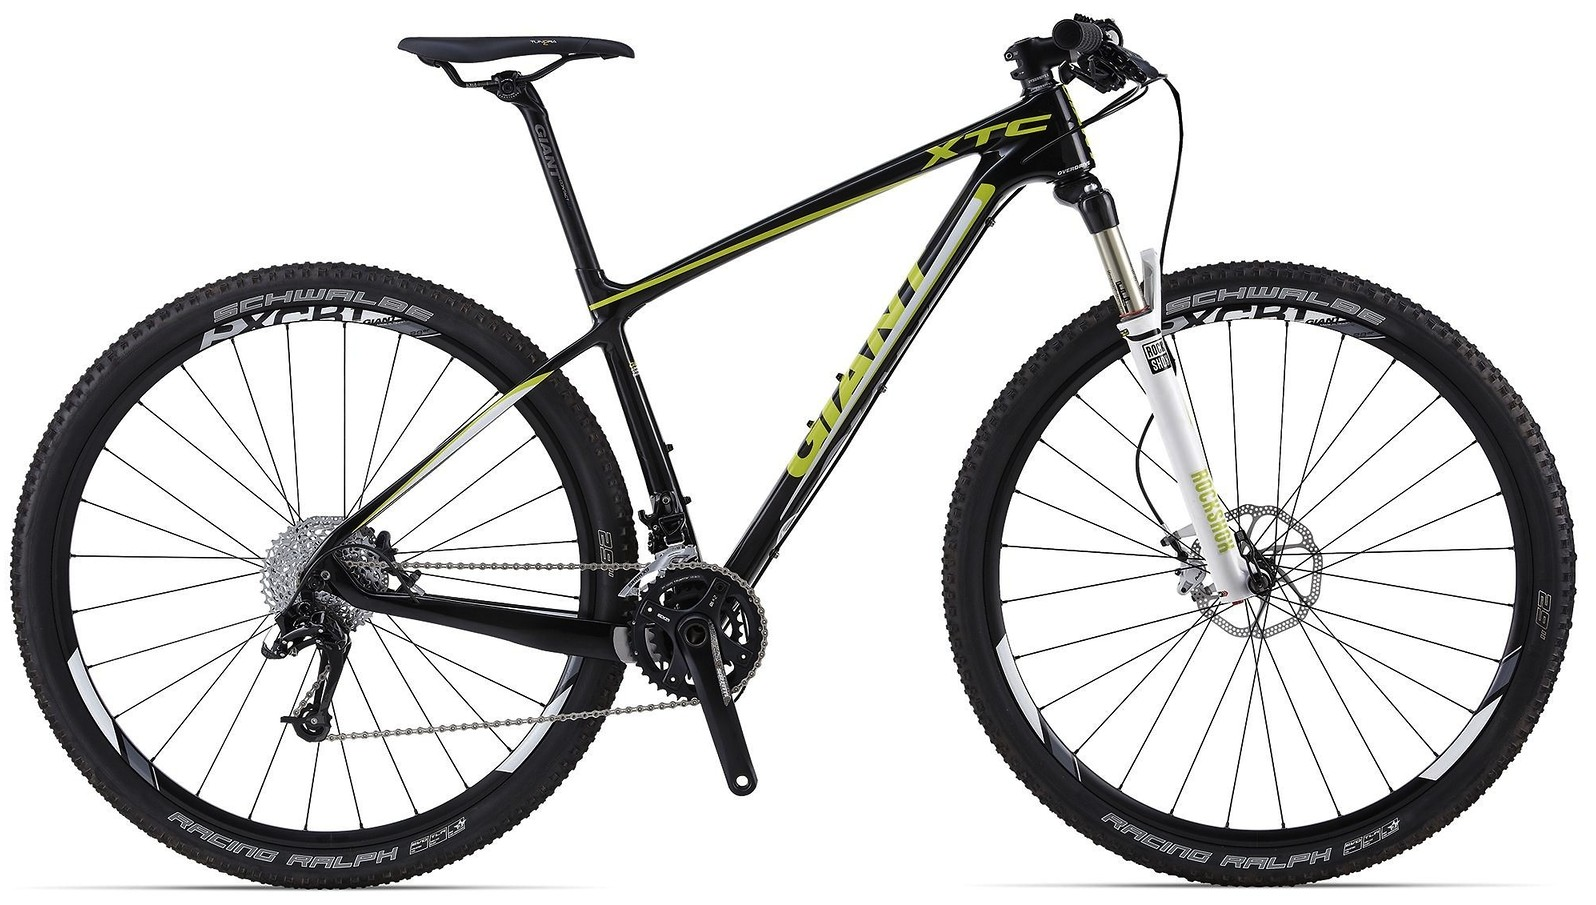 XtC_Advanced_SL_29er_1_RT